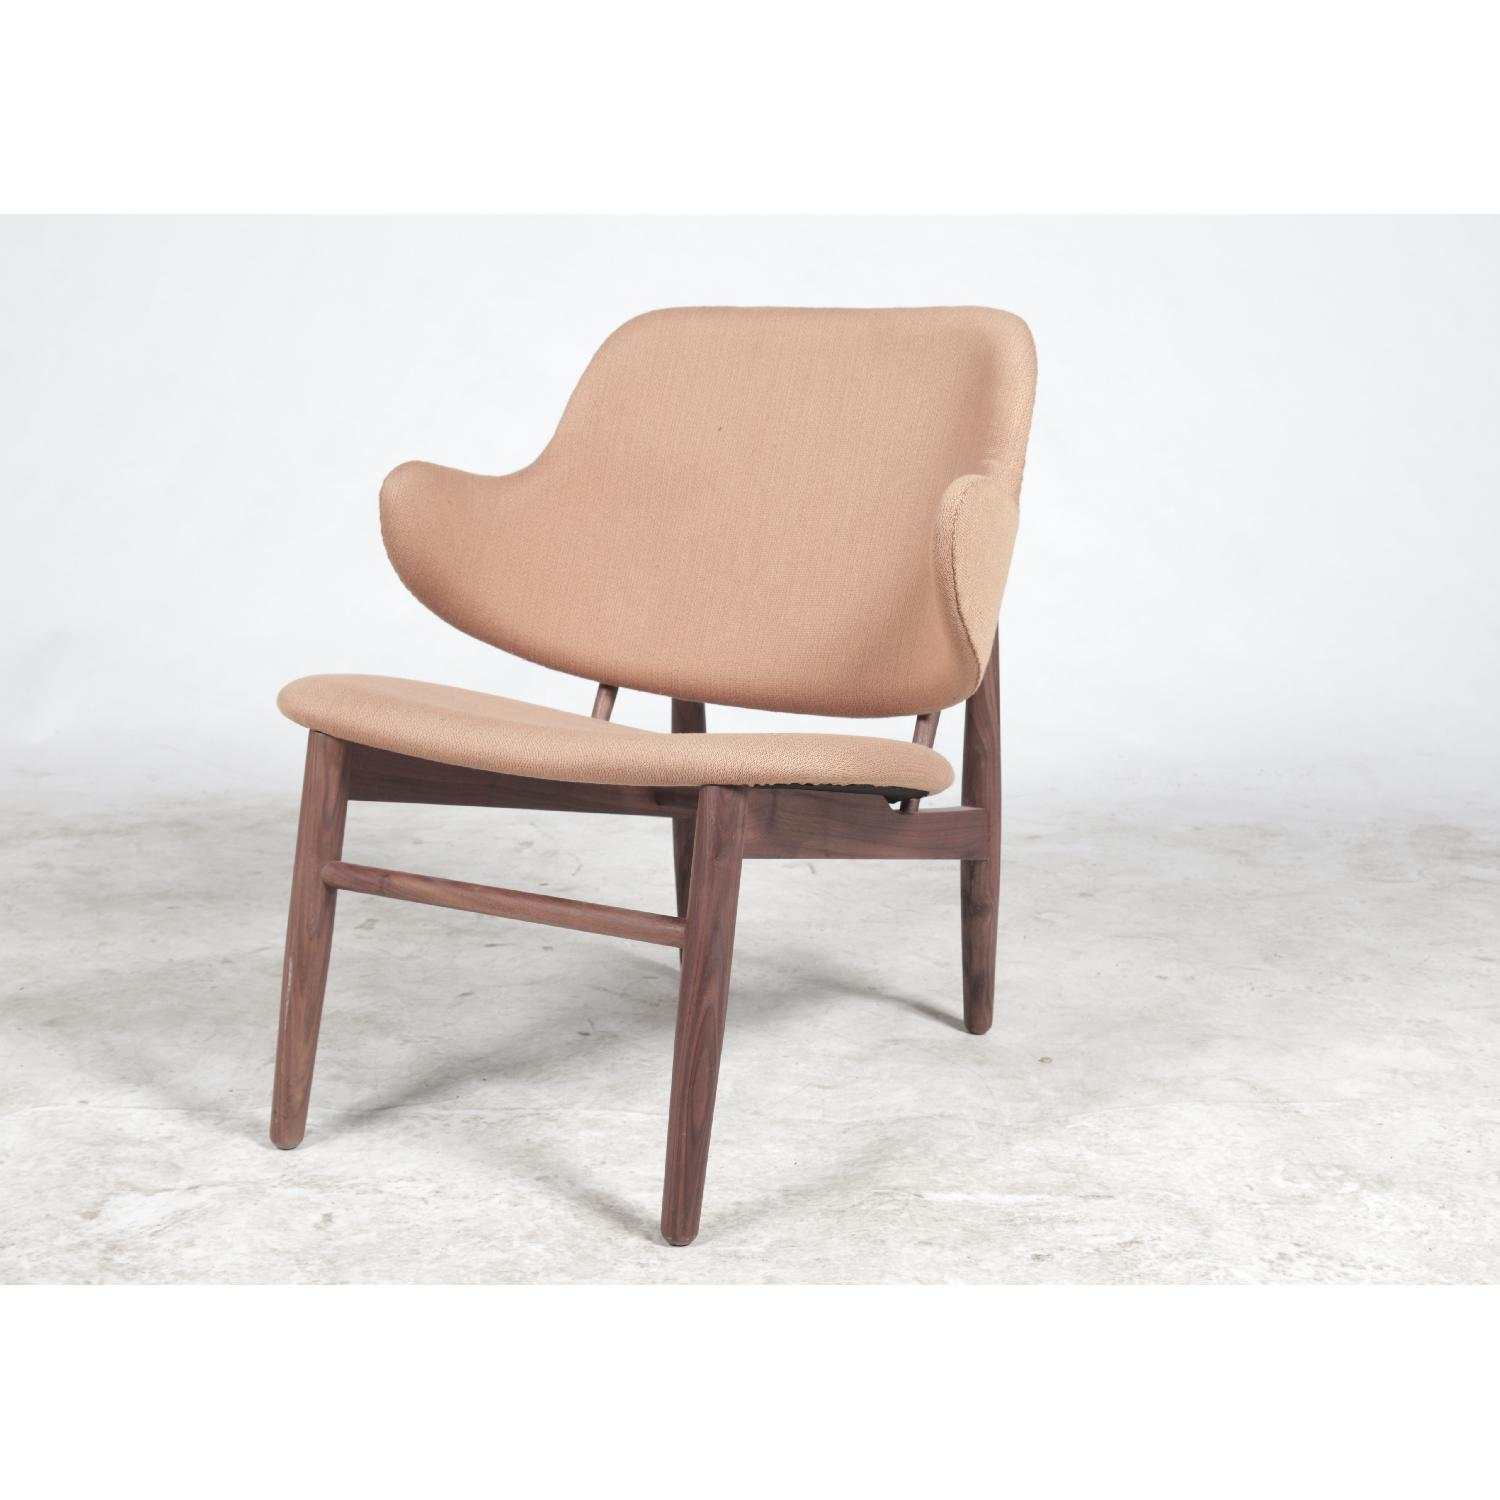 Organic Modernism Umma Lounge Chair-1